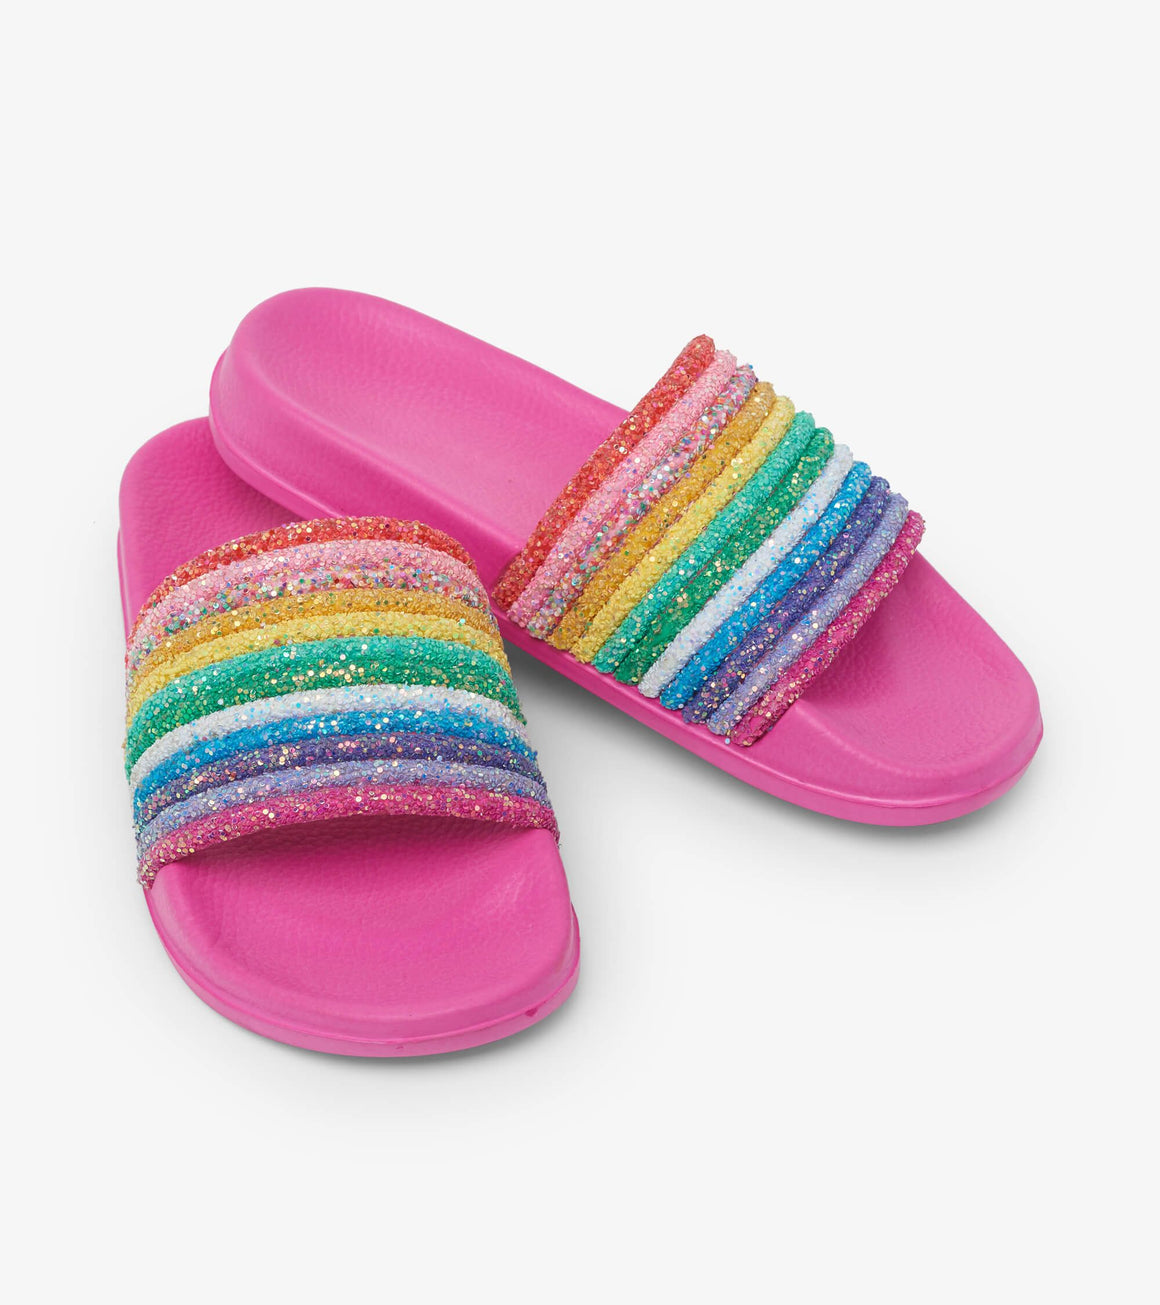 Girls easy on off slide on sandals in hot pink with glittery rainbow upper.